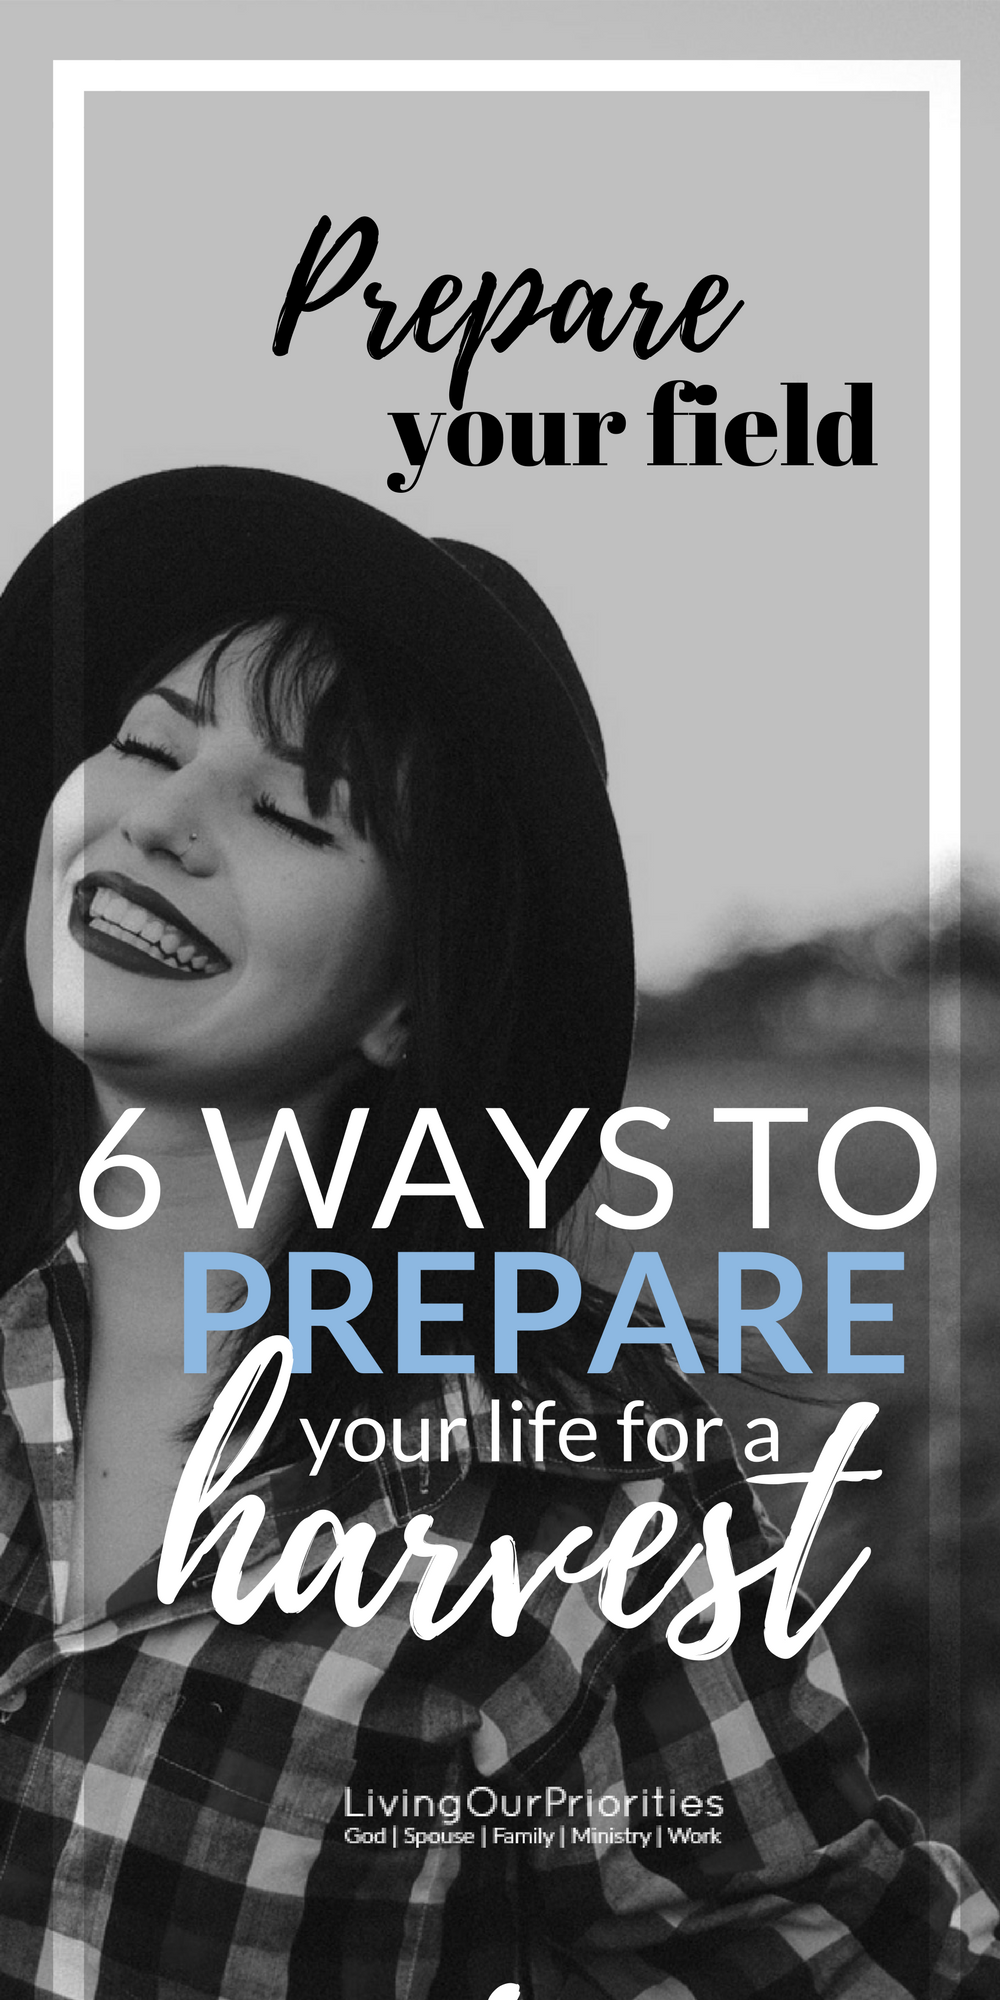 Are you prepared for a harvest? Sure we all want more in life. However, whether we're content or not with our harvest in life, all comes down to how we prepare. Here are 6 ways to prepare your life for a harvest right now!